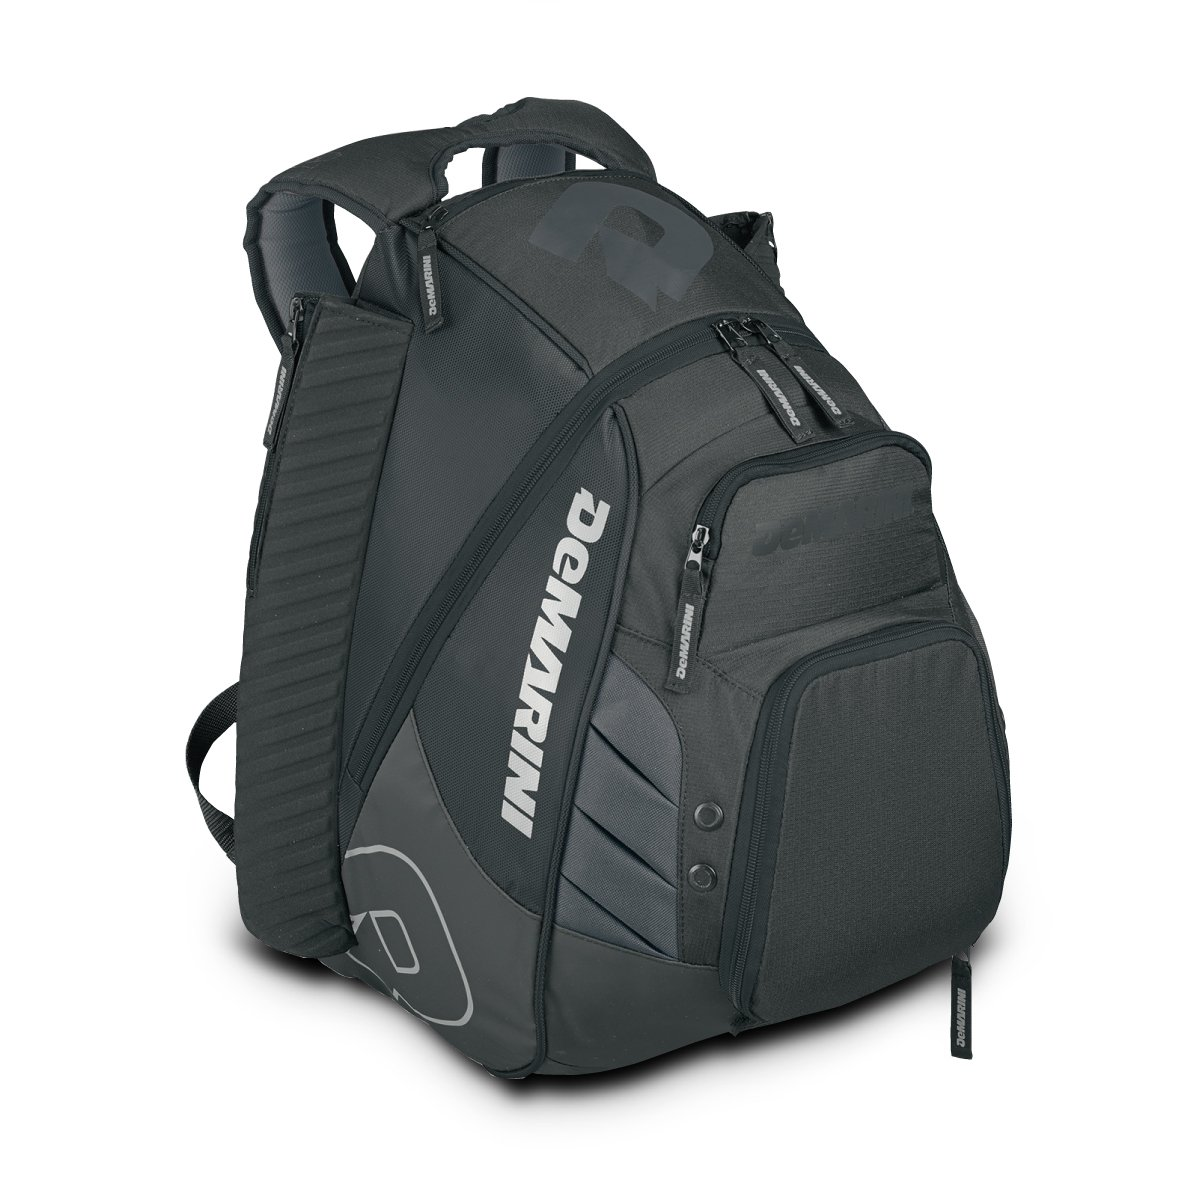 DeMarini Voodoo Rebirth Backpack, Black